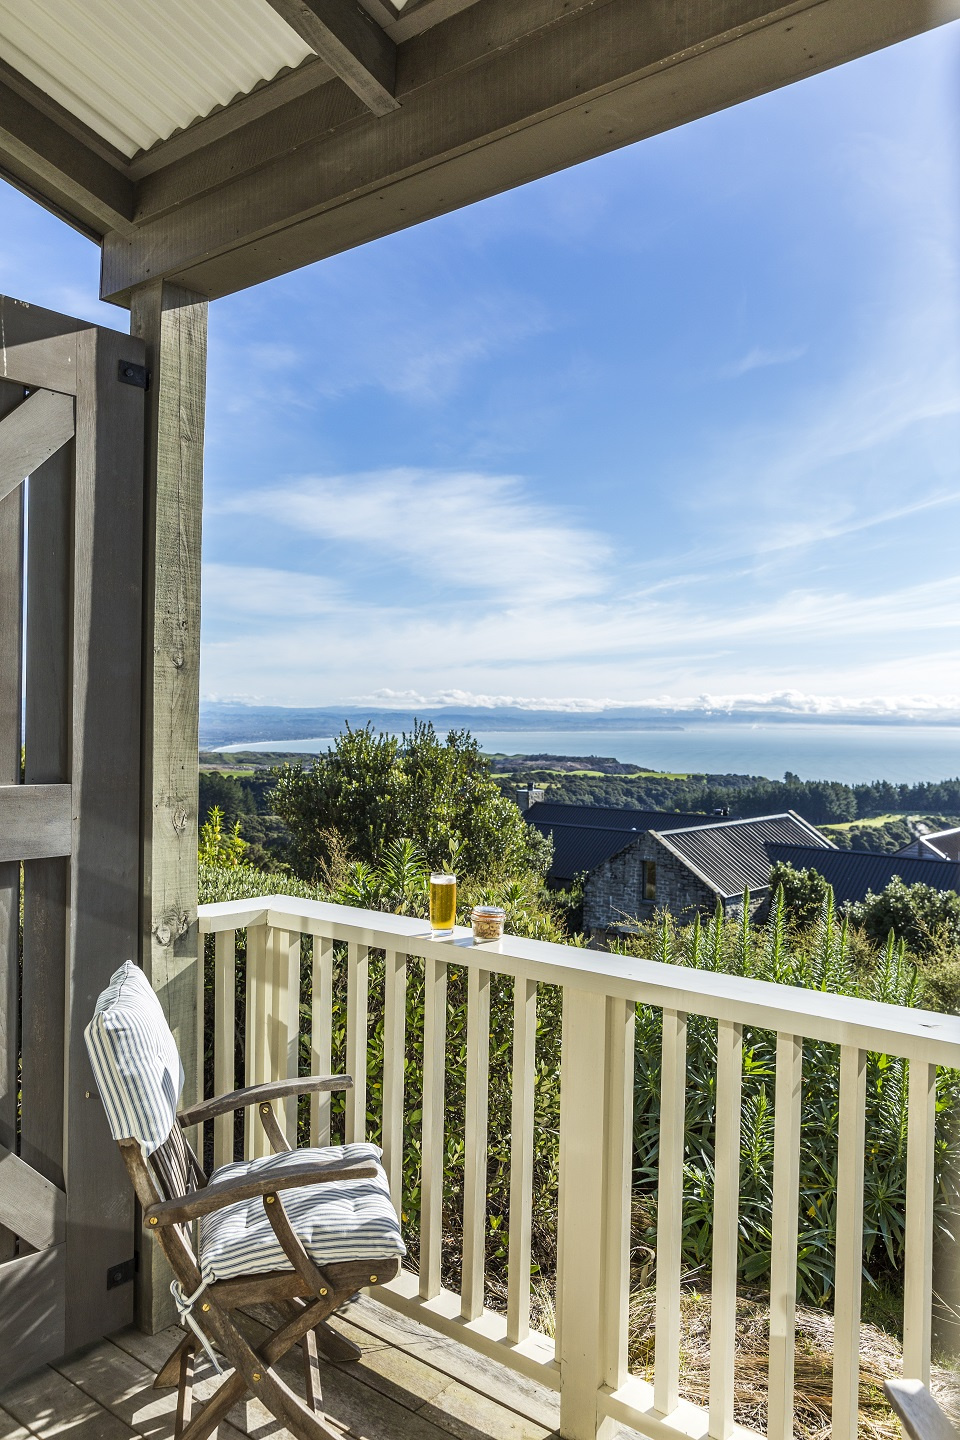 Marvel at the beautiful scenic views across the Cape Kidnappers property from your hilltop suite